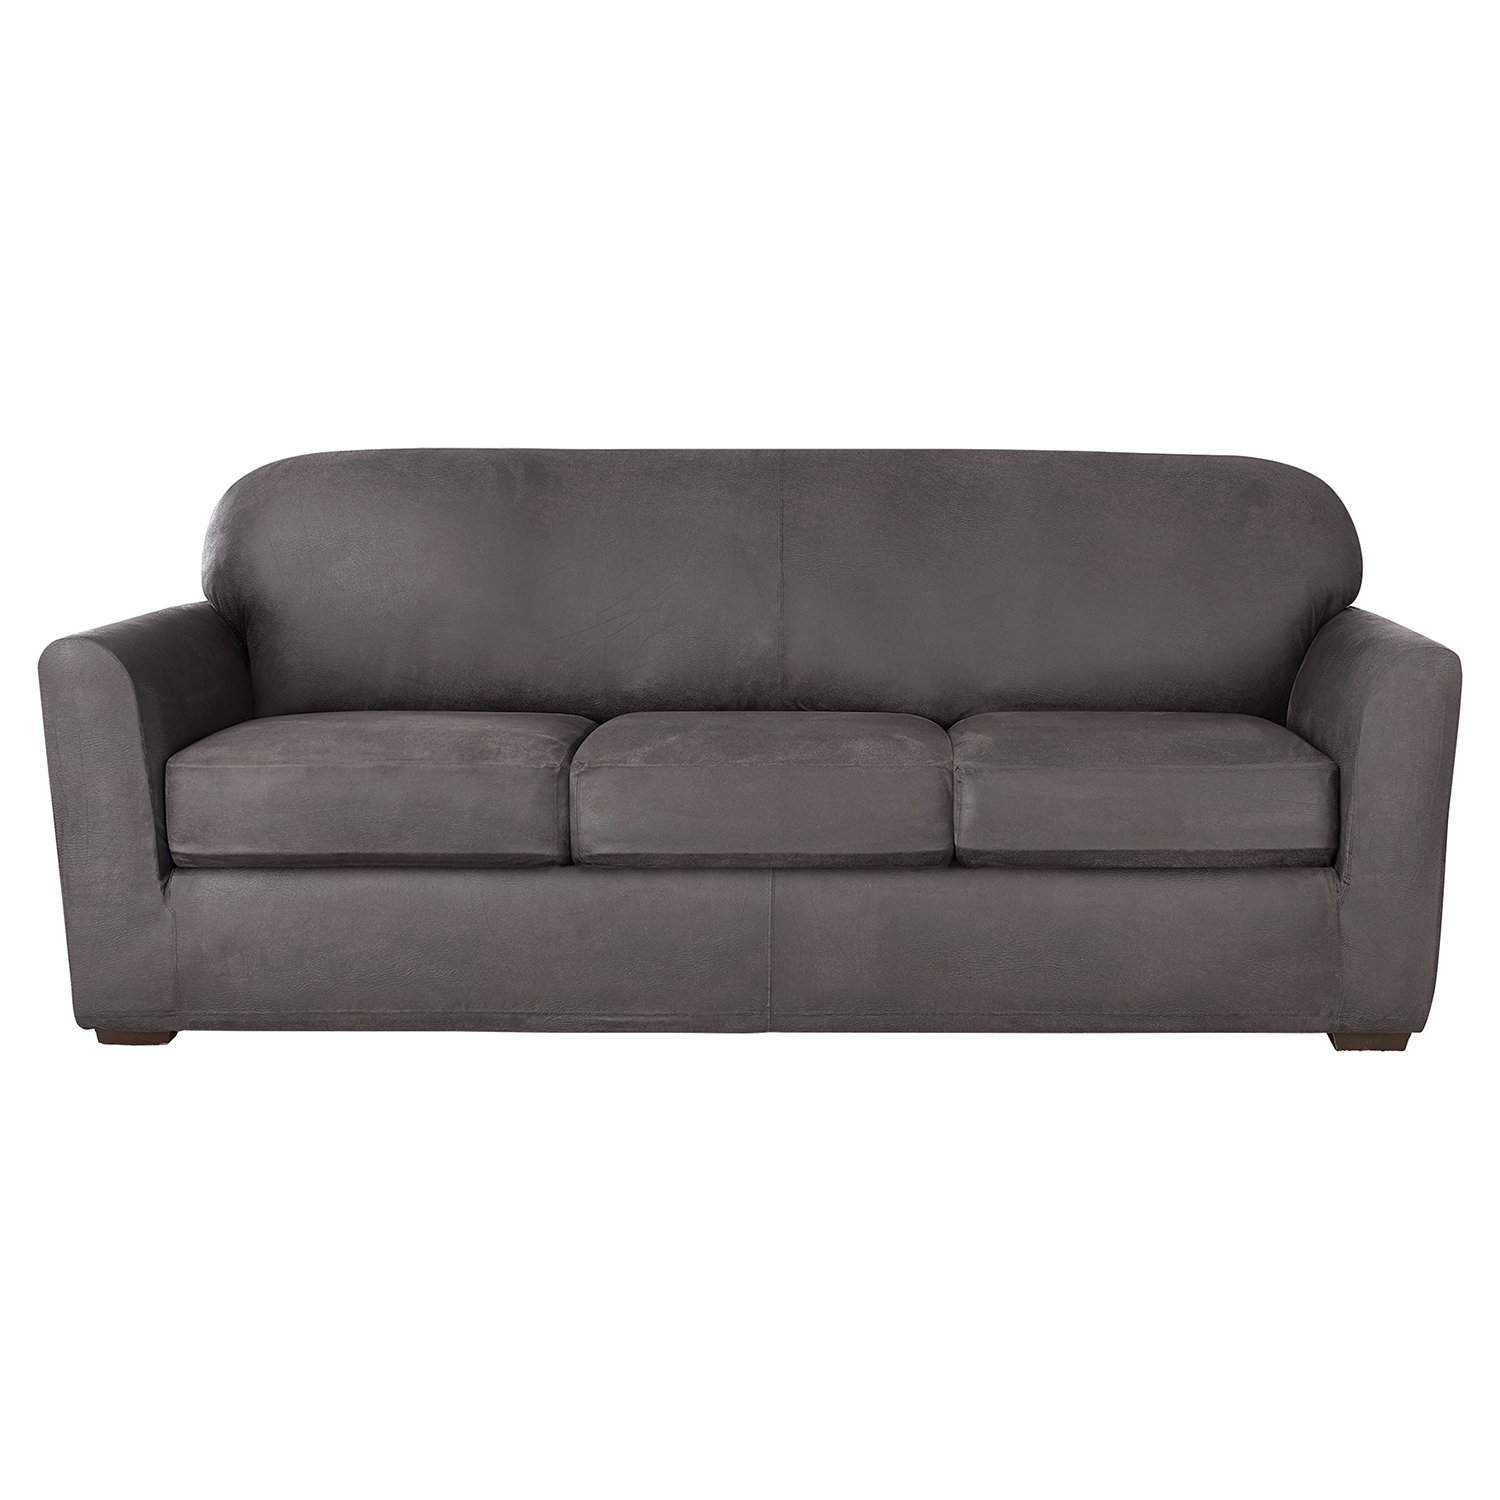 Amazon Sure Fit Ultimate Stretch Leather Sofa Slipcover